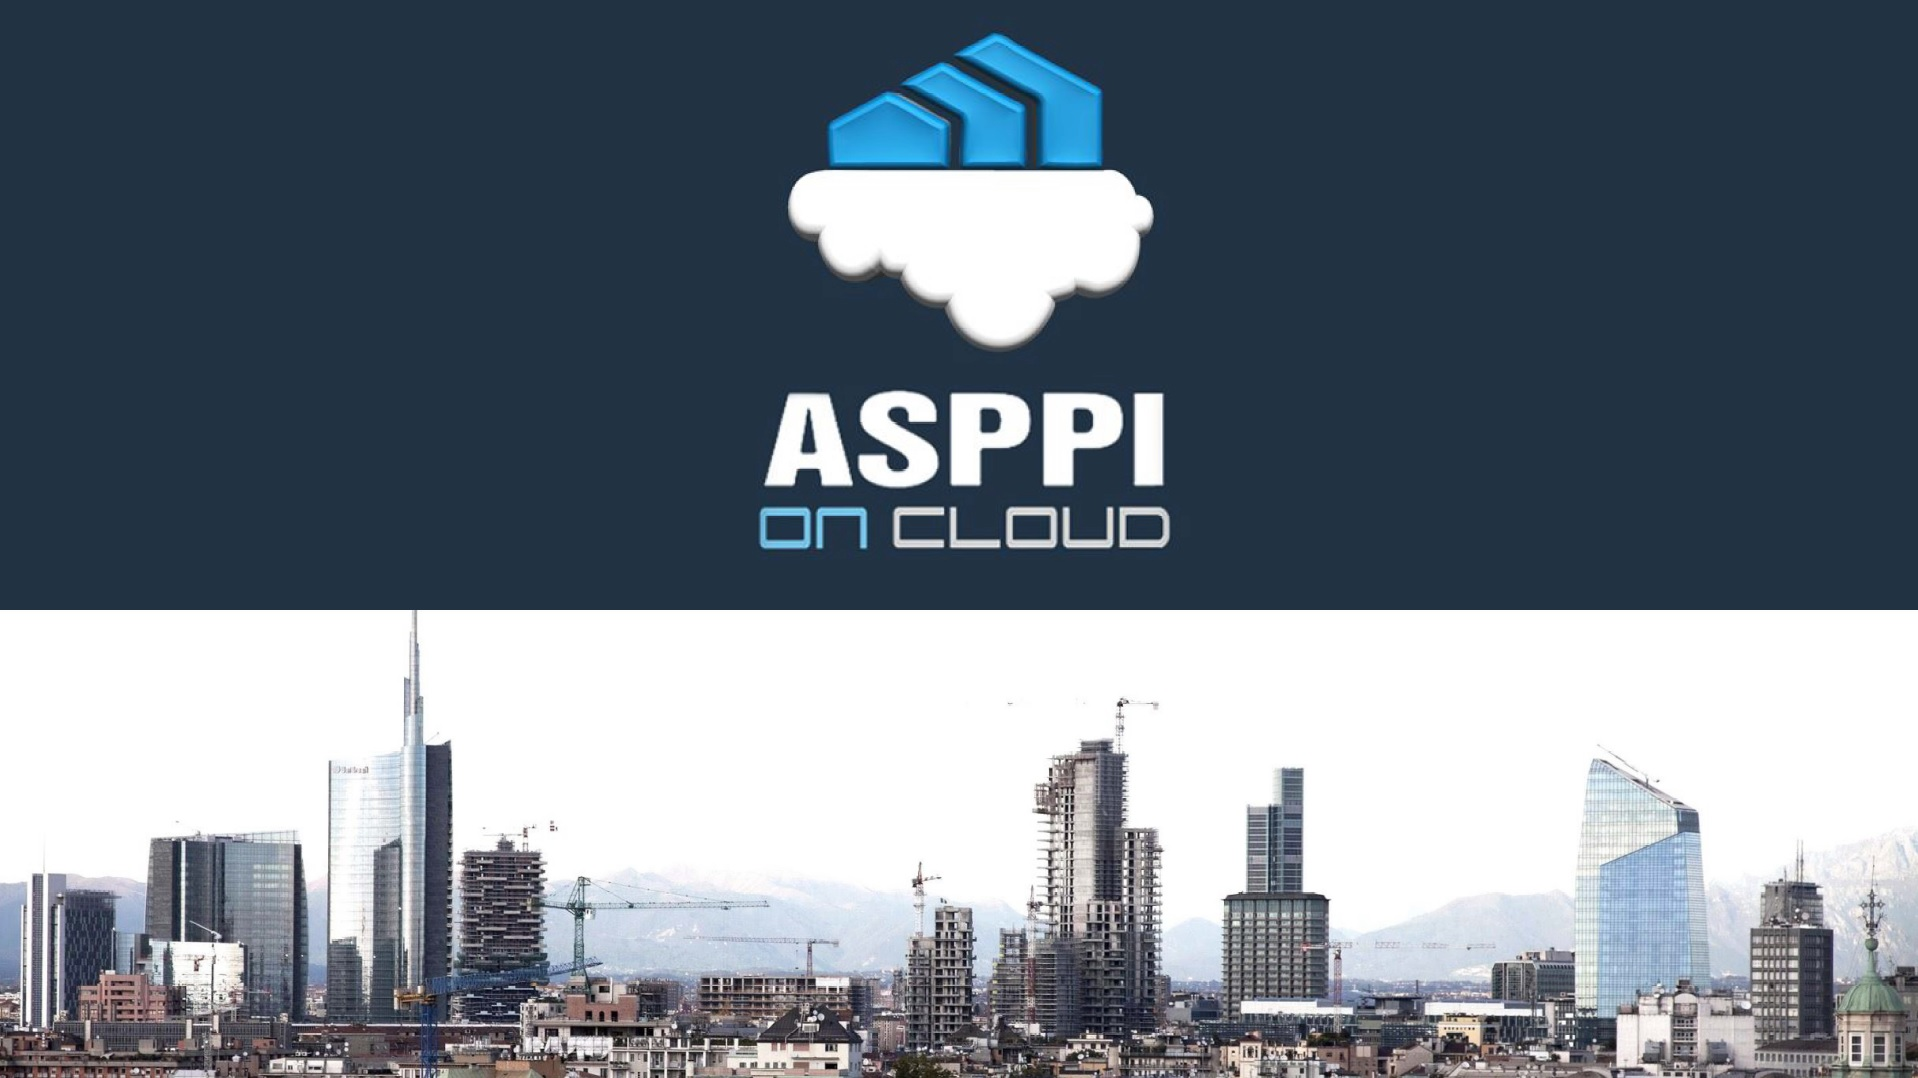 Nasce oggi ASPPI ON CLOUD